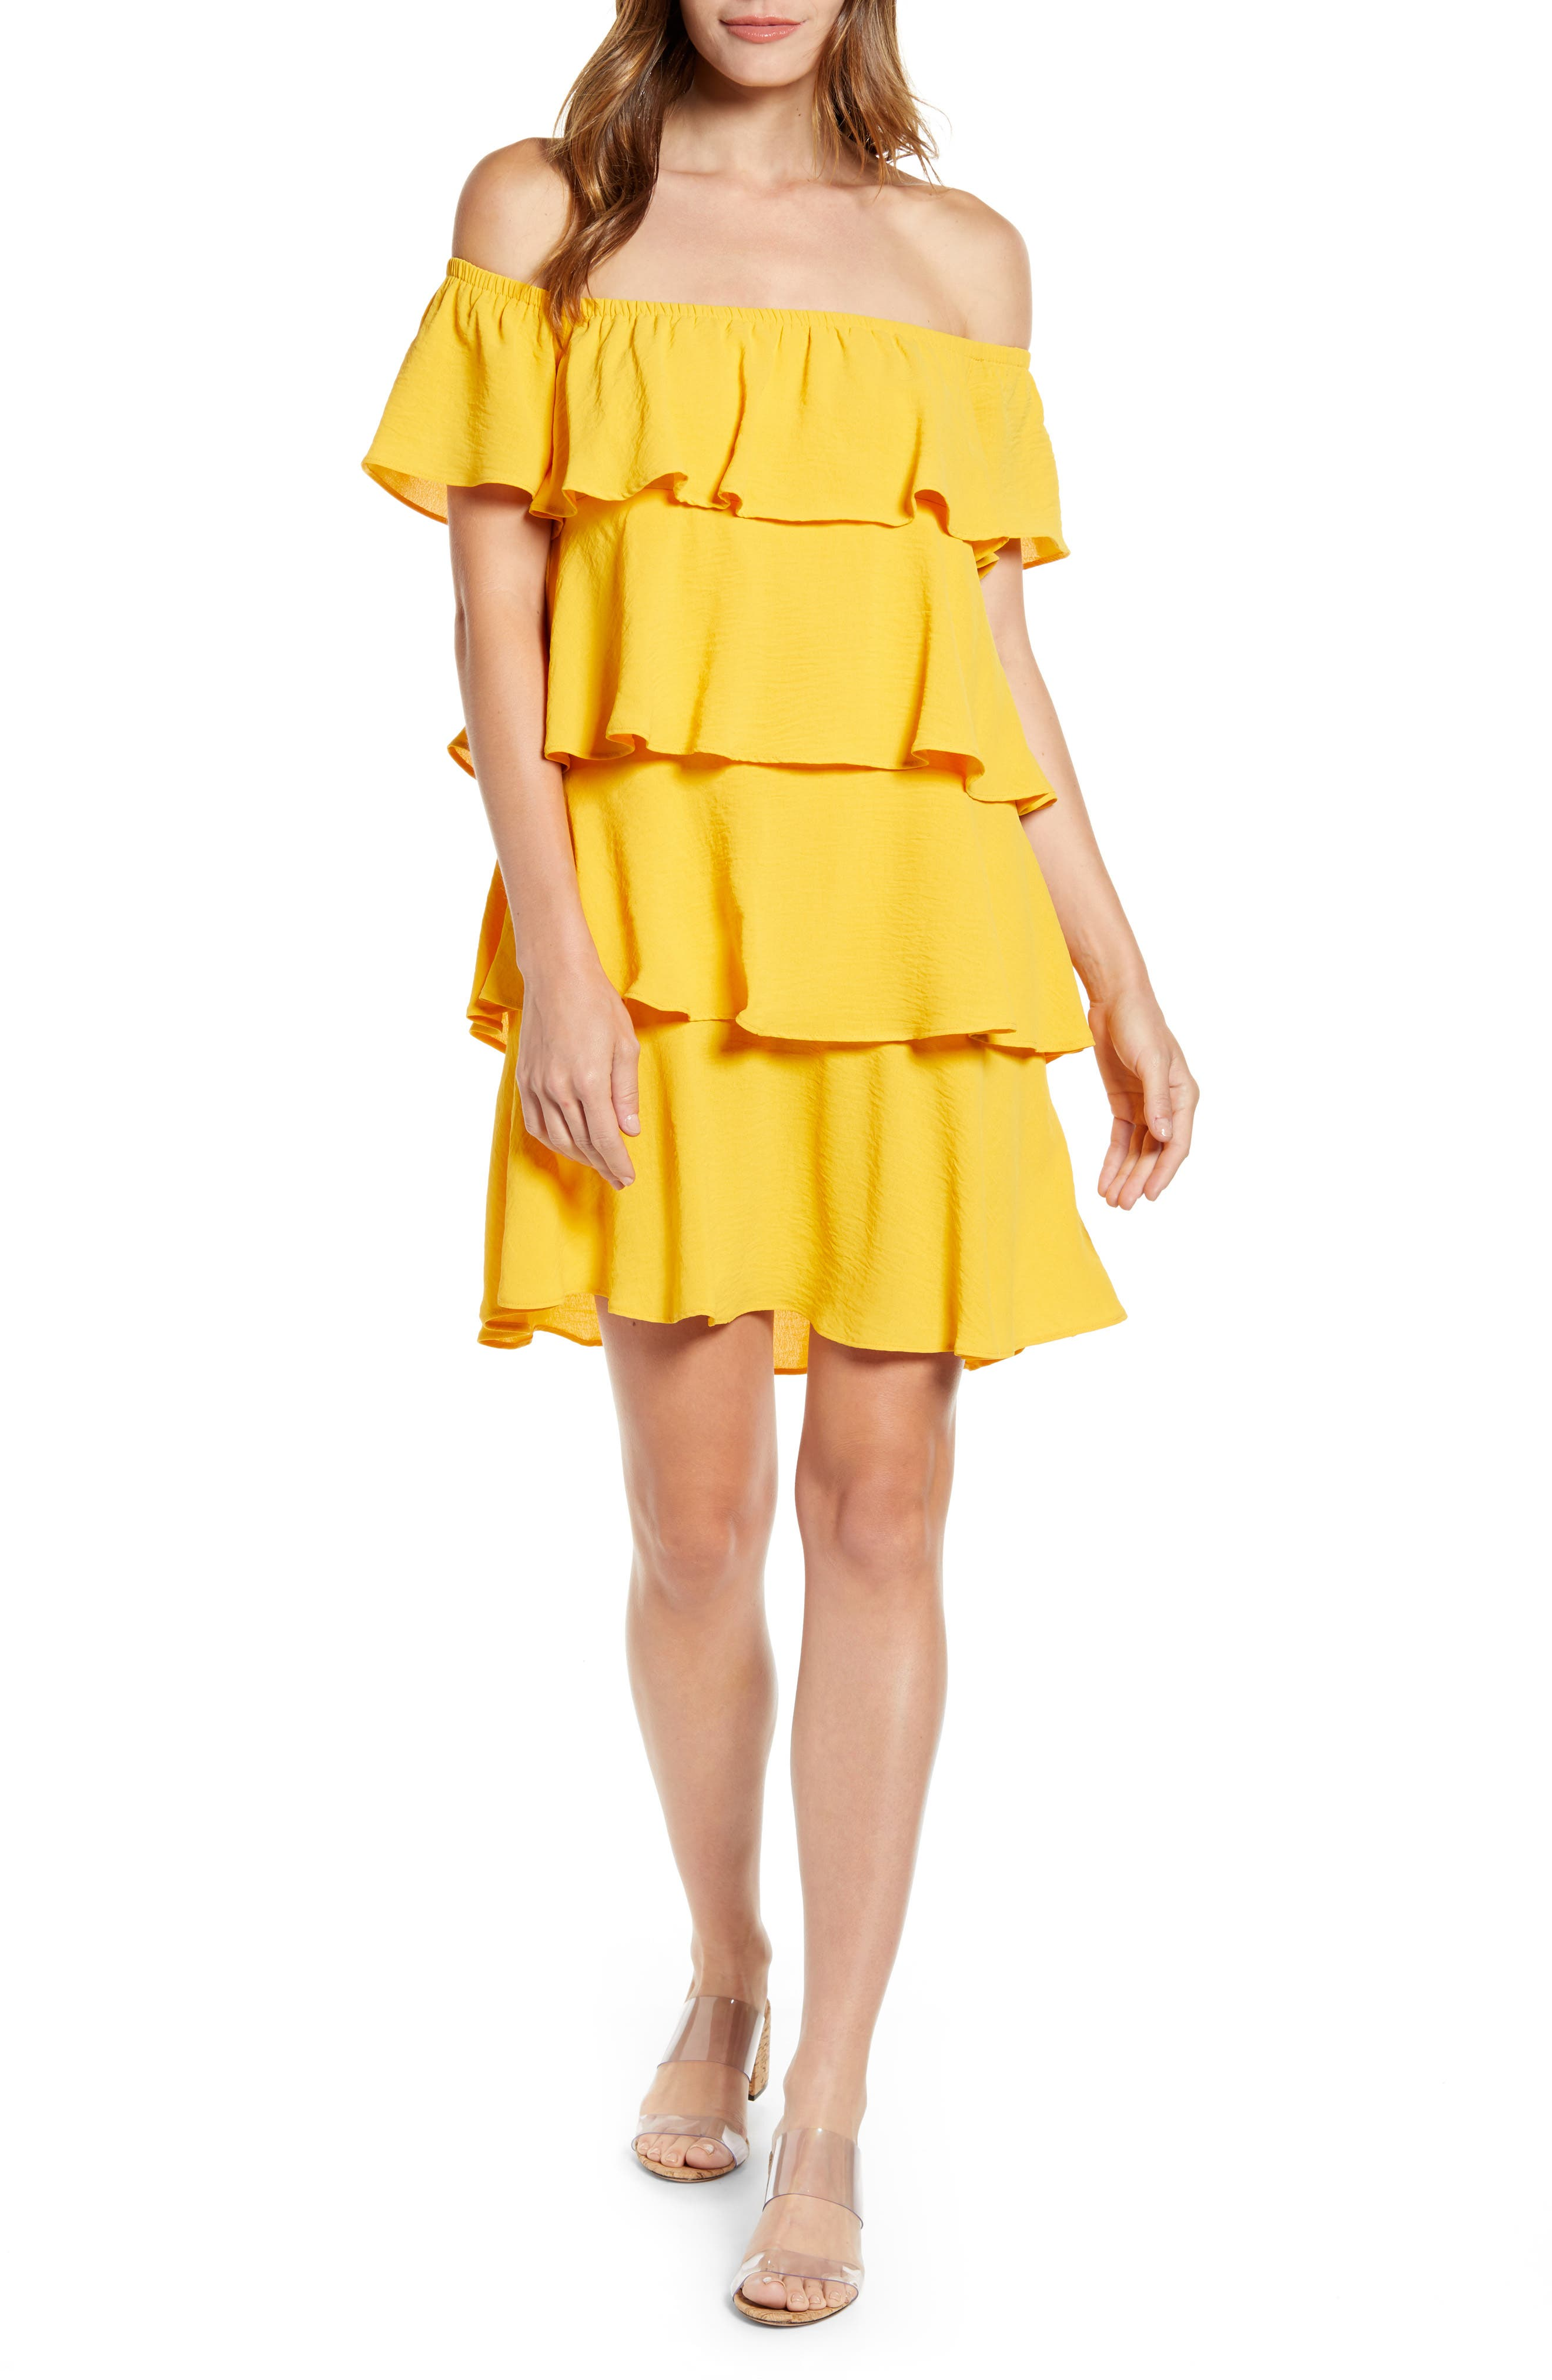 Petite Gibson X Hot Summer Nights Natalie Off The Shoulder Ruffle Dress, Yellow (Regular & Petite) (Nordstrom Exclusive)